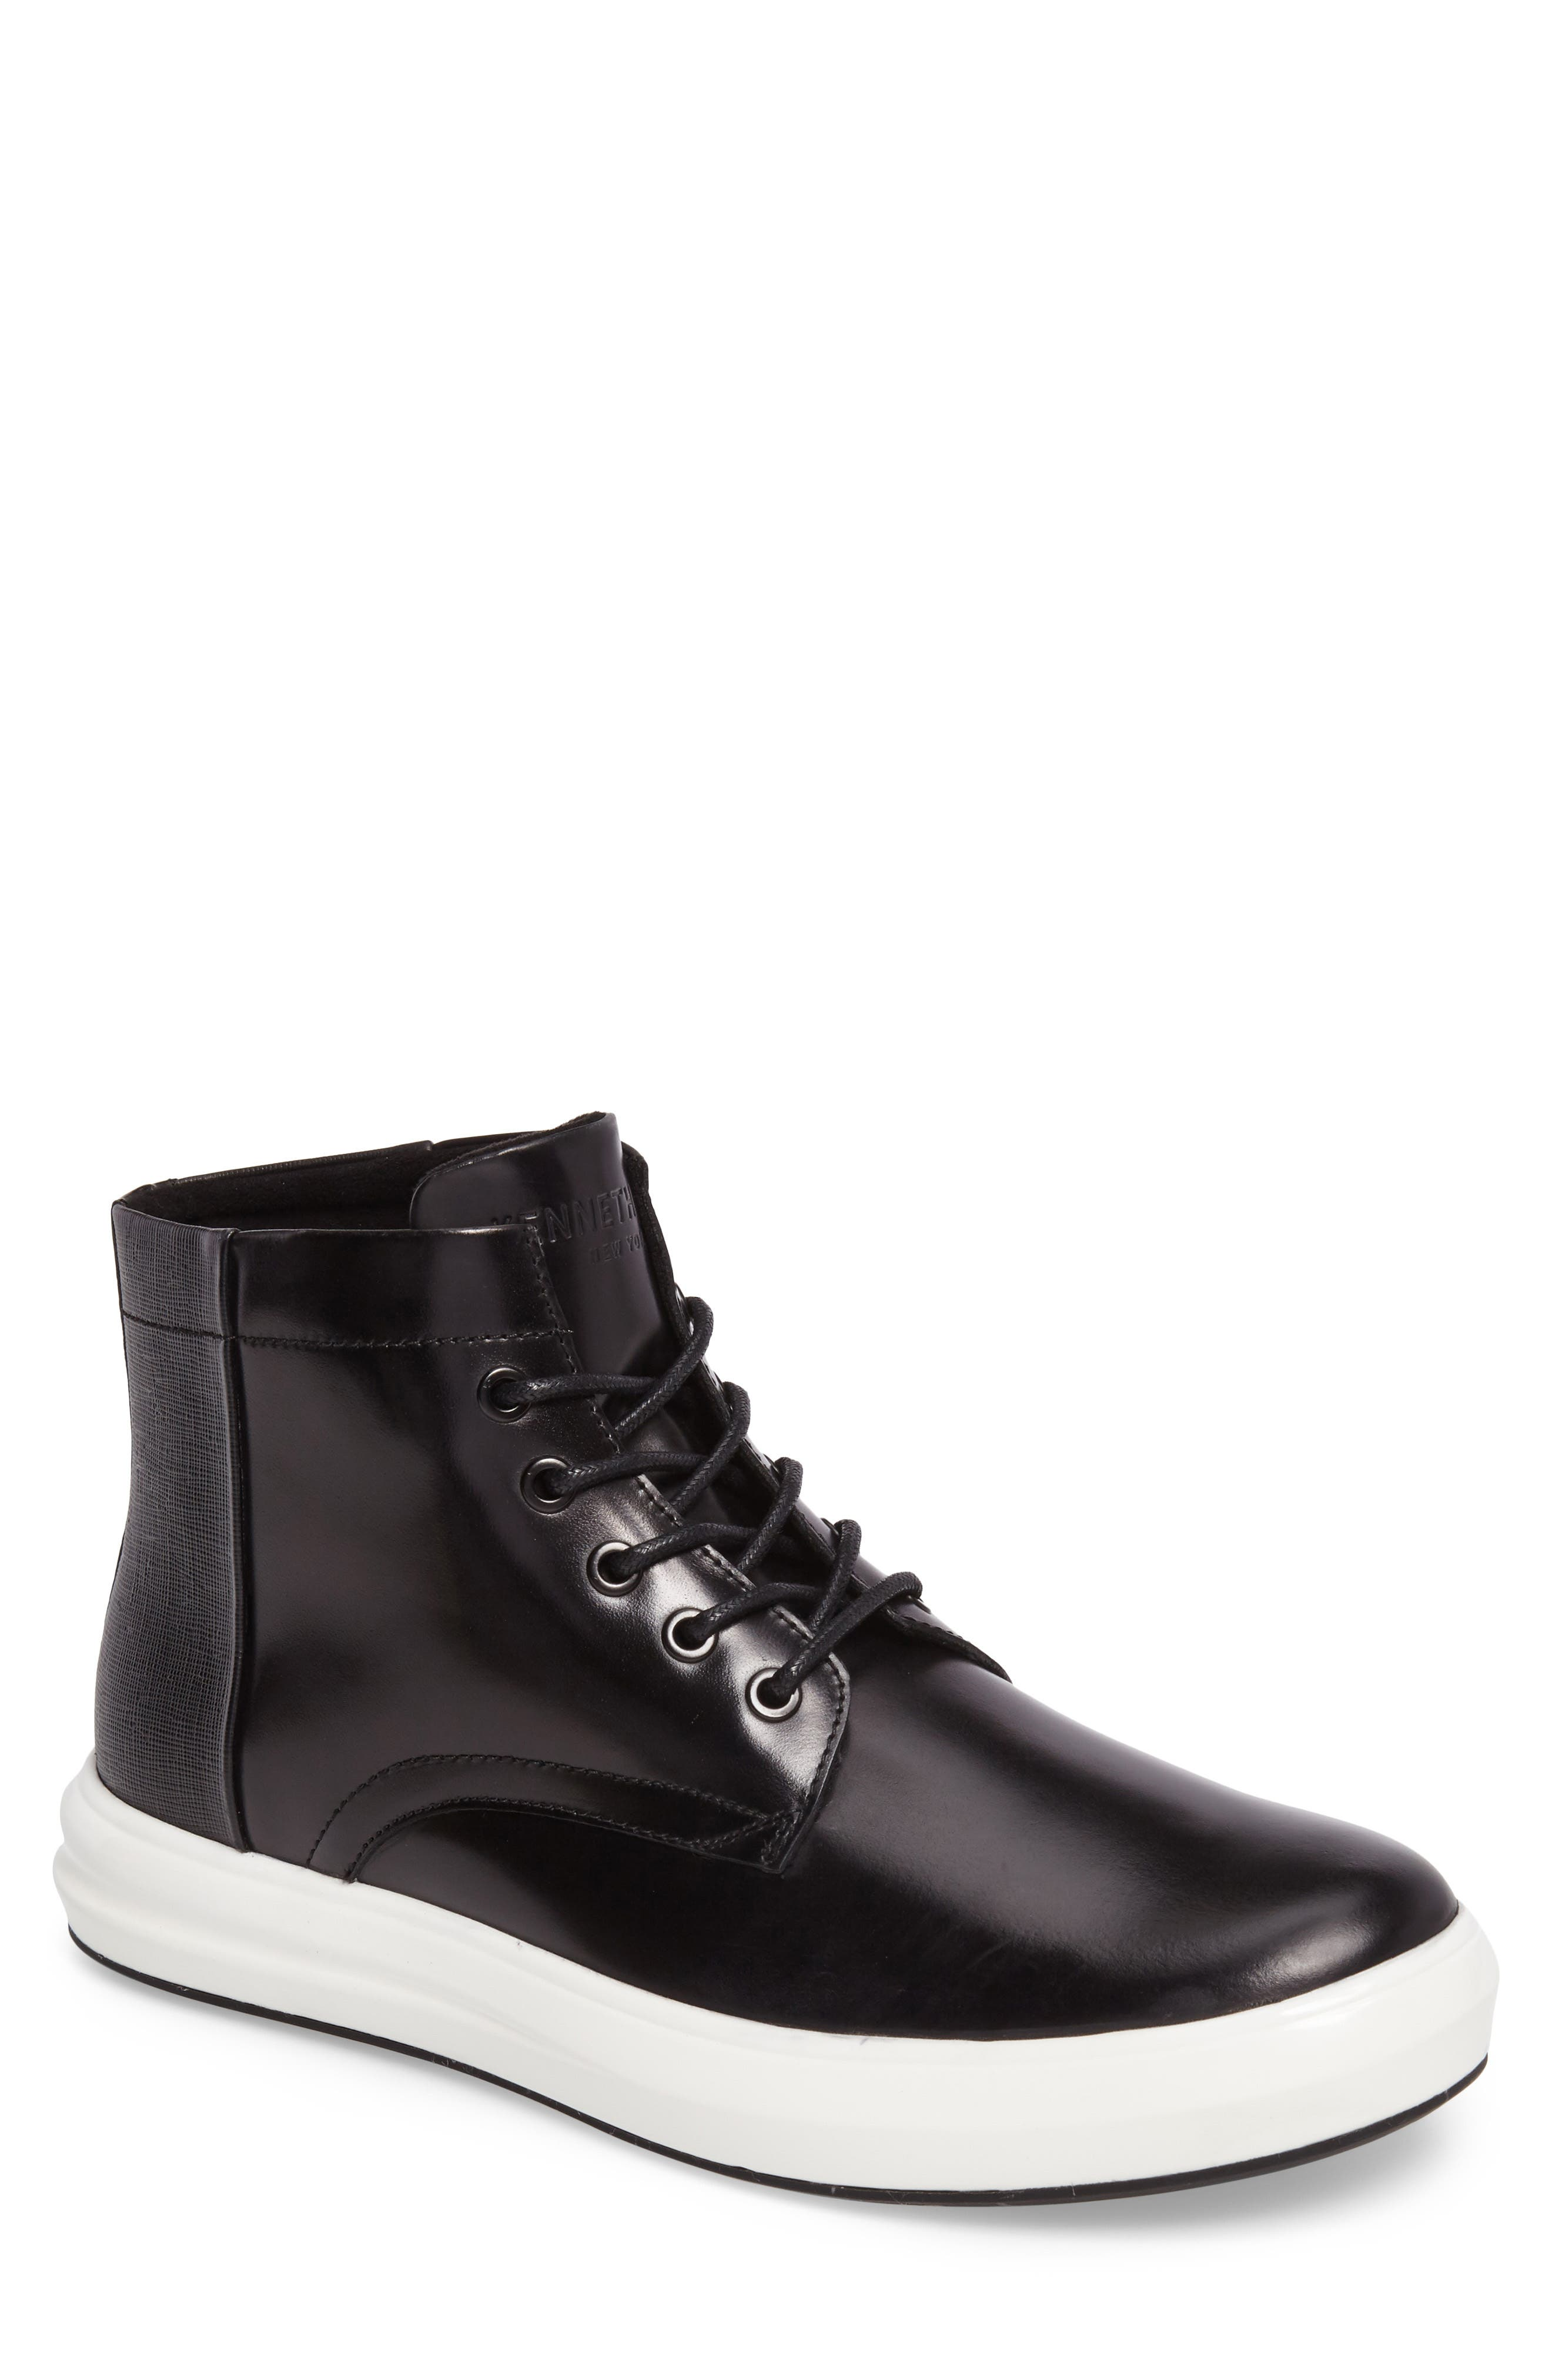 Alternate Image 1 Selected - Kenneth Cole New York High Top Sneaker (Men)